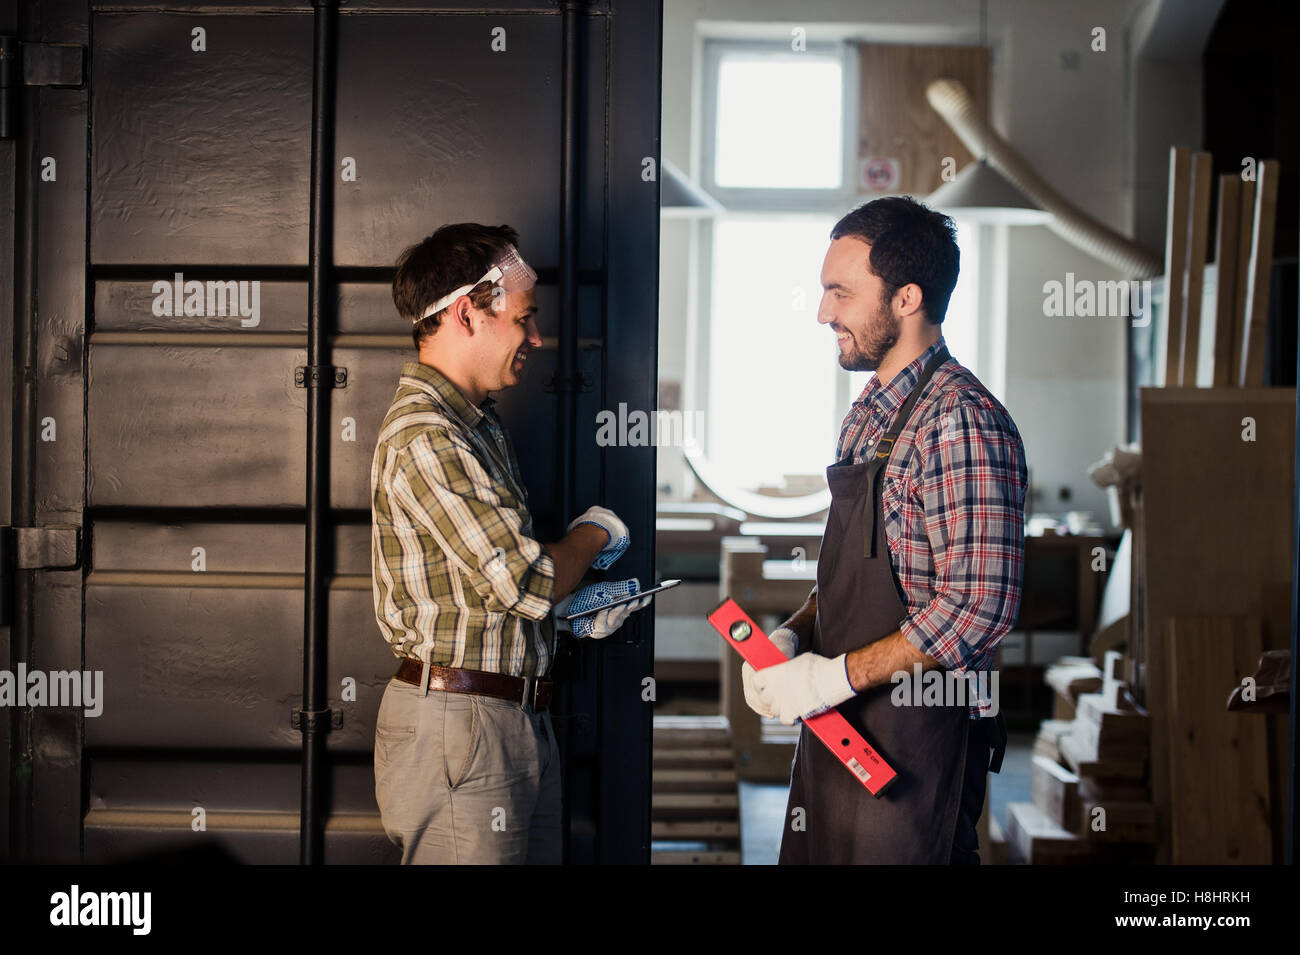 Male architects shaking hands at construction site - Stock Image